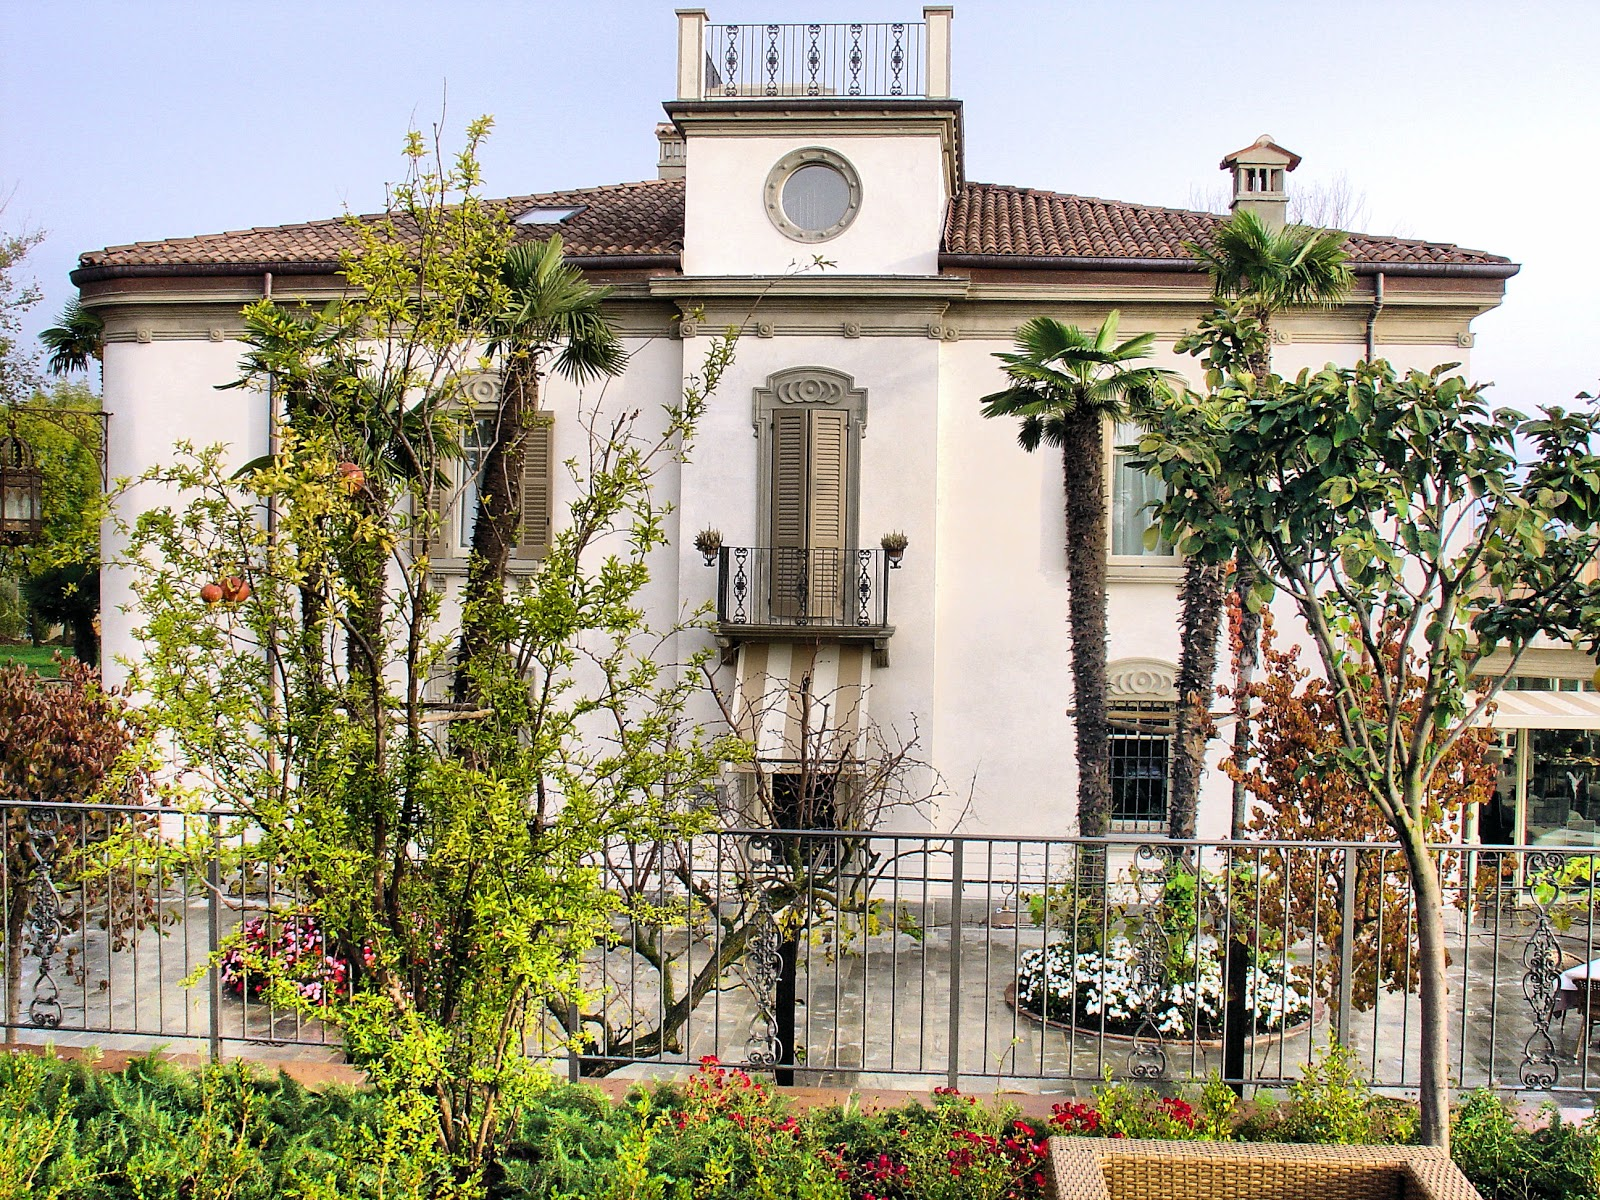 Le Ali del Frassino was at one time a dilapidated villa and over five years of restorations, it was transformed into the sprawling resort and spa within the Lake Frassino nature reserve.